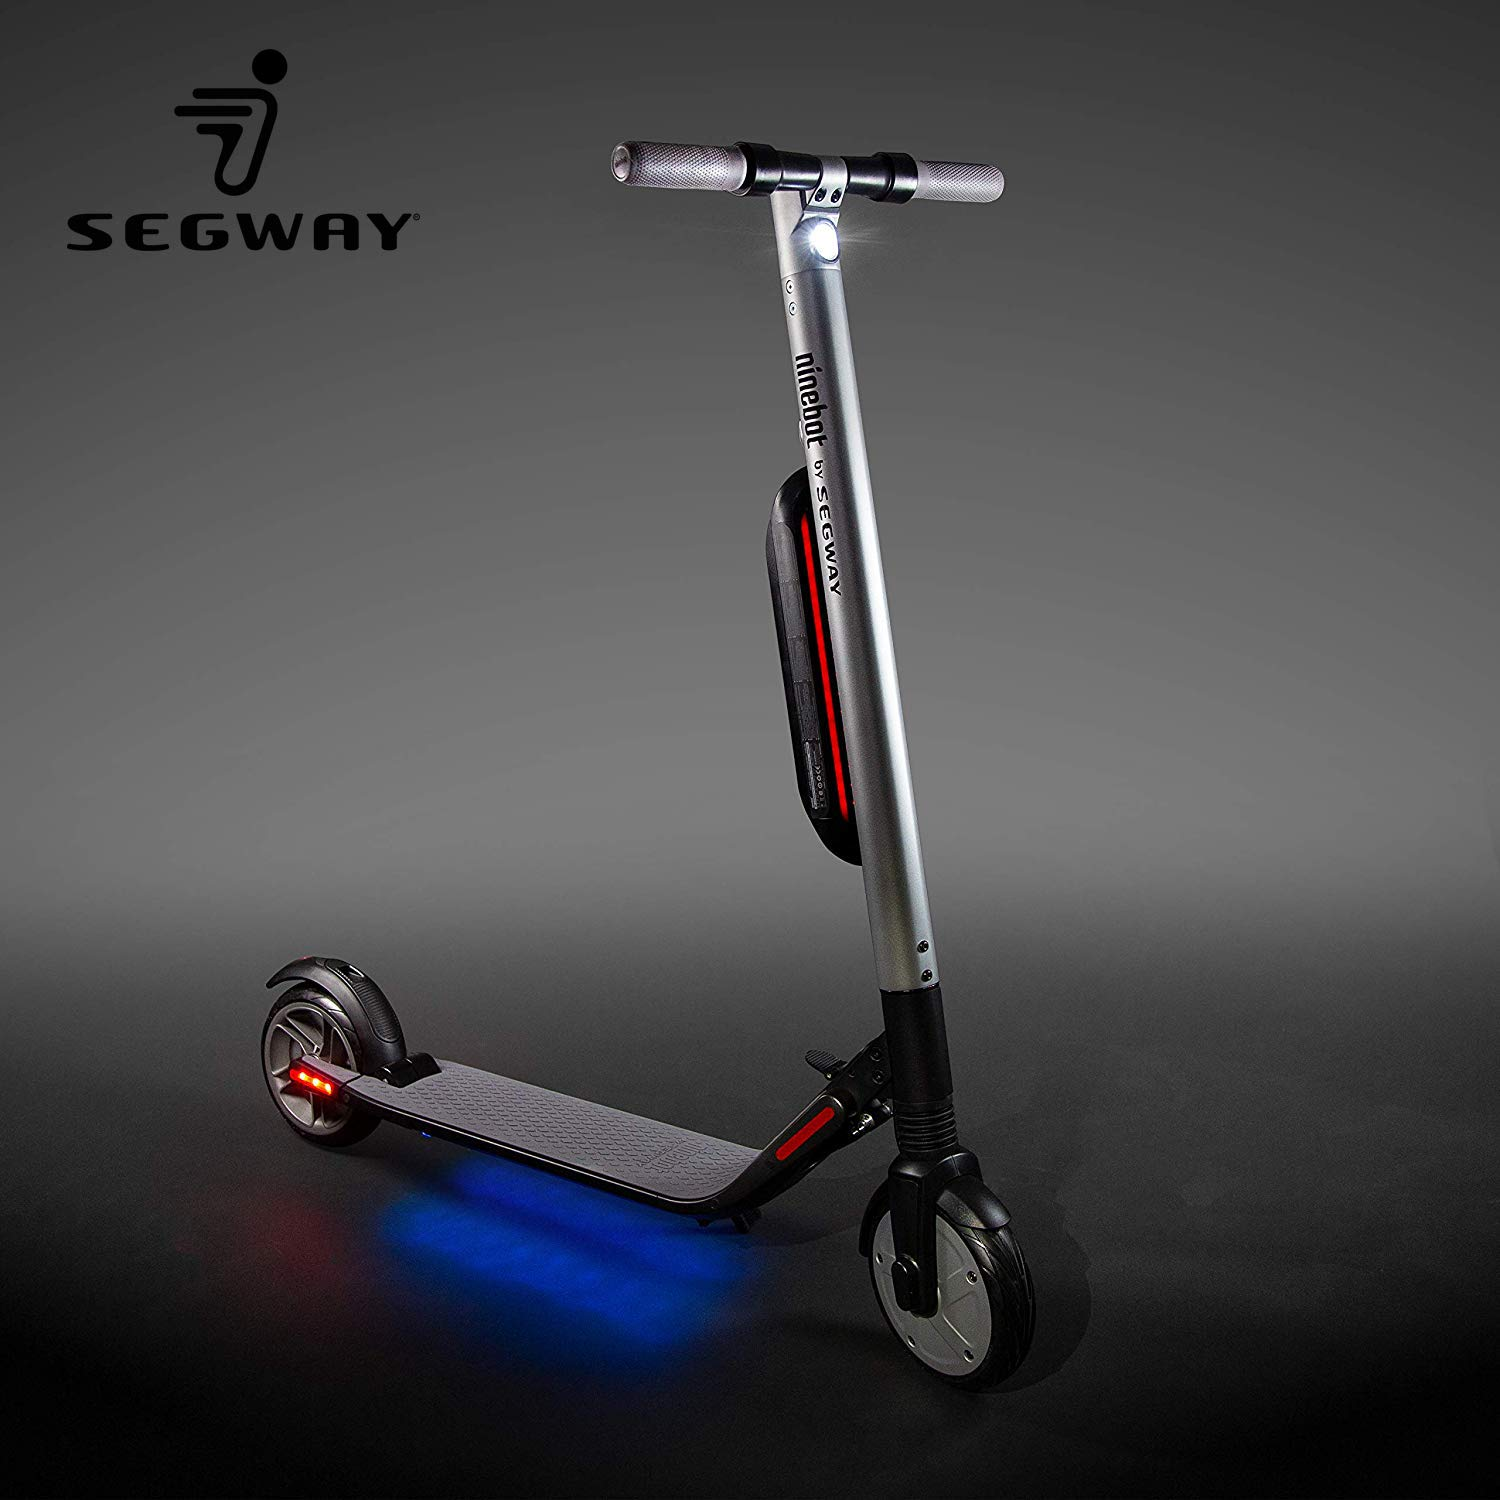 Amazon.com: Ninebot Segway ES4 Kick Scooter - Patinete ...